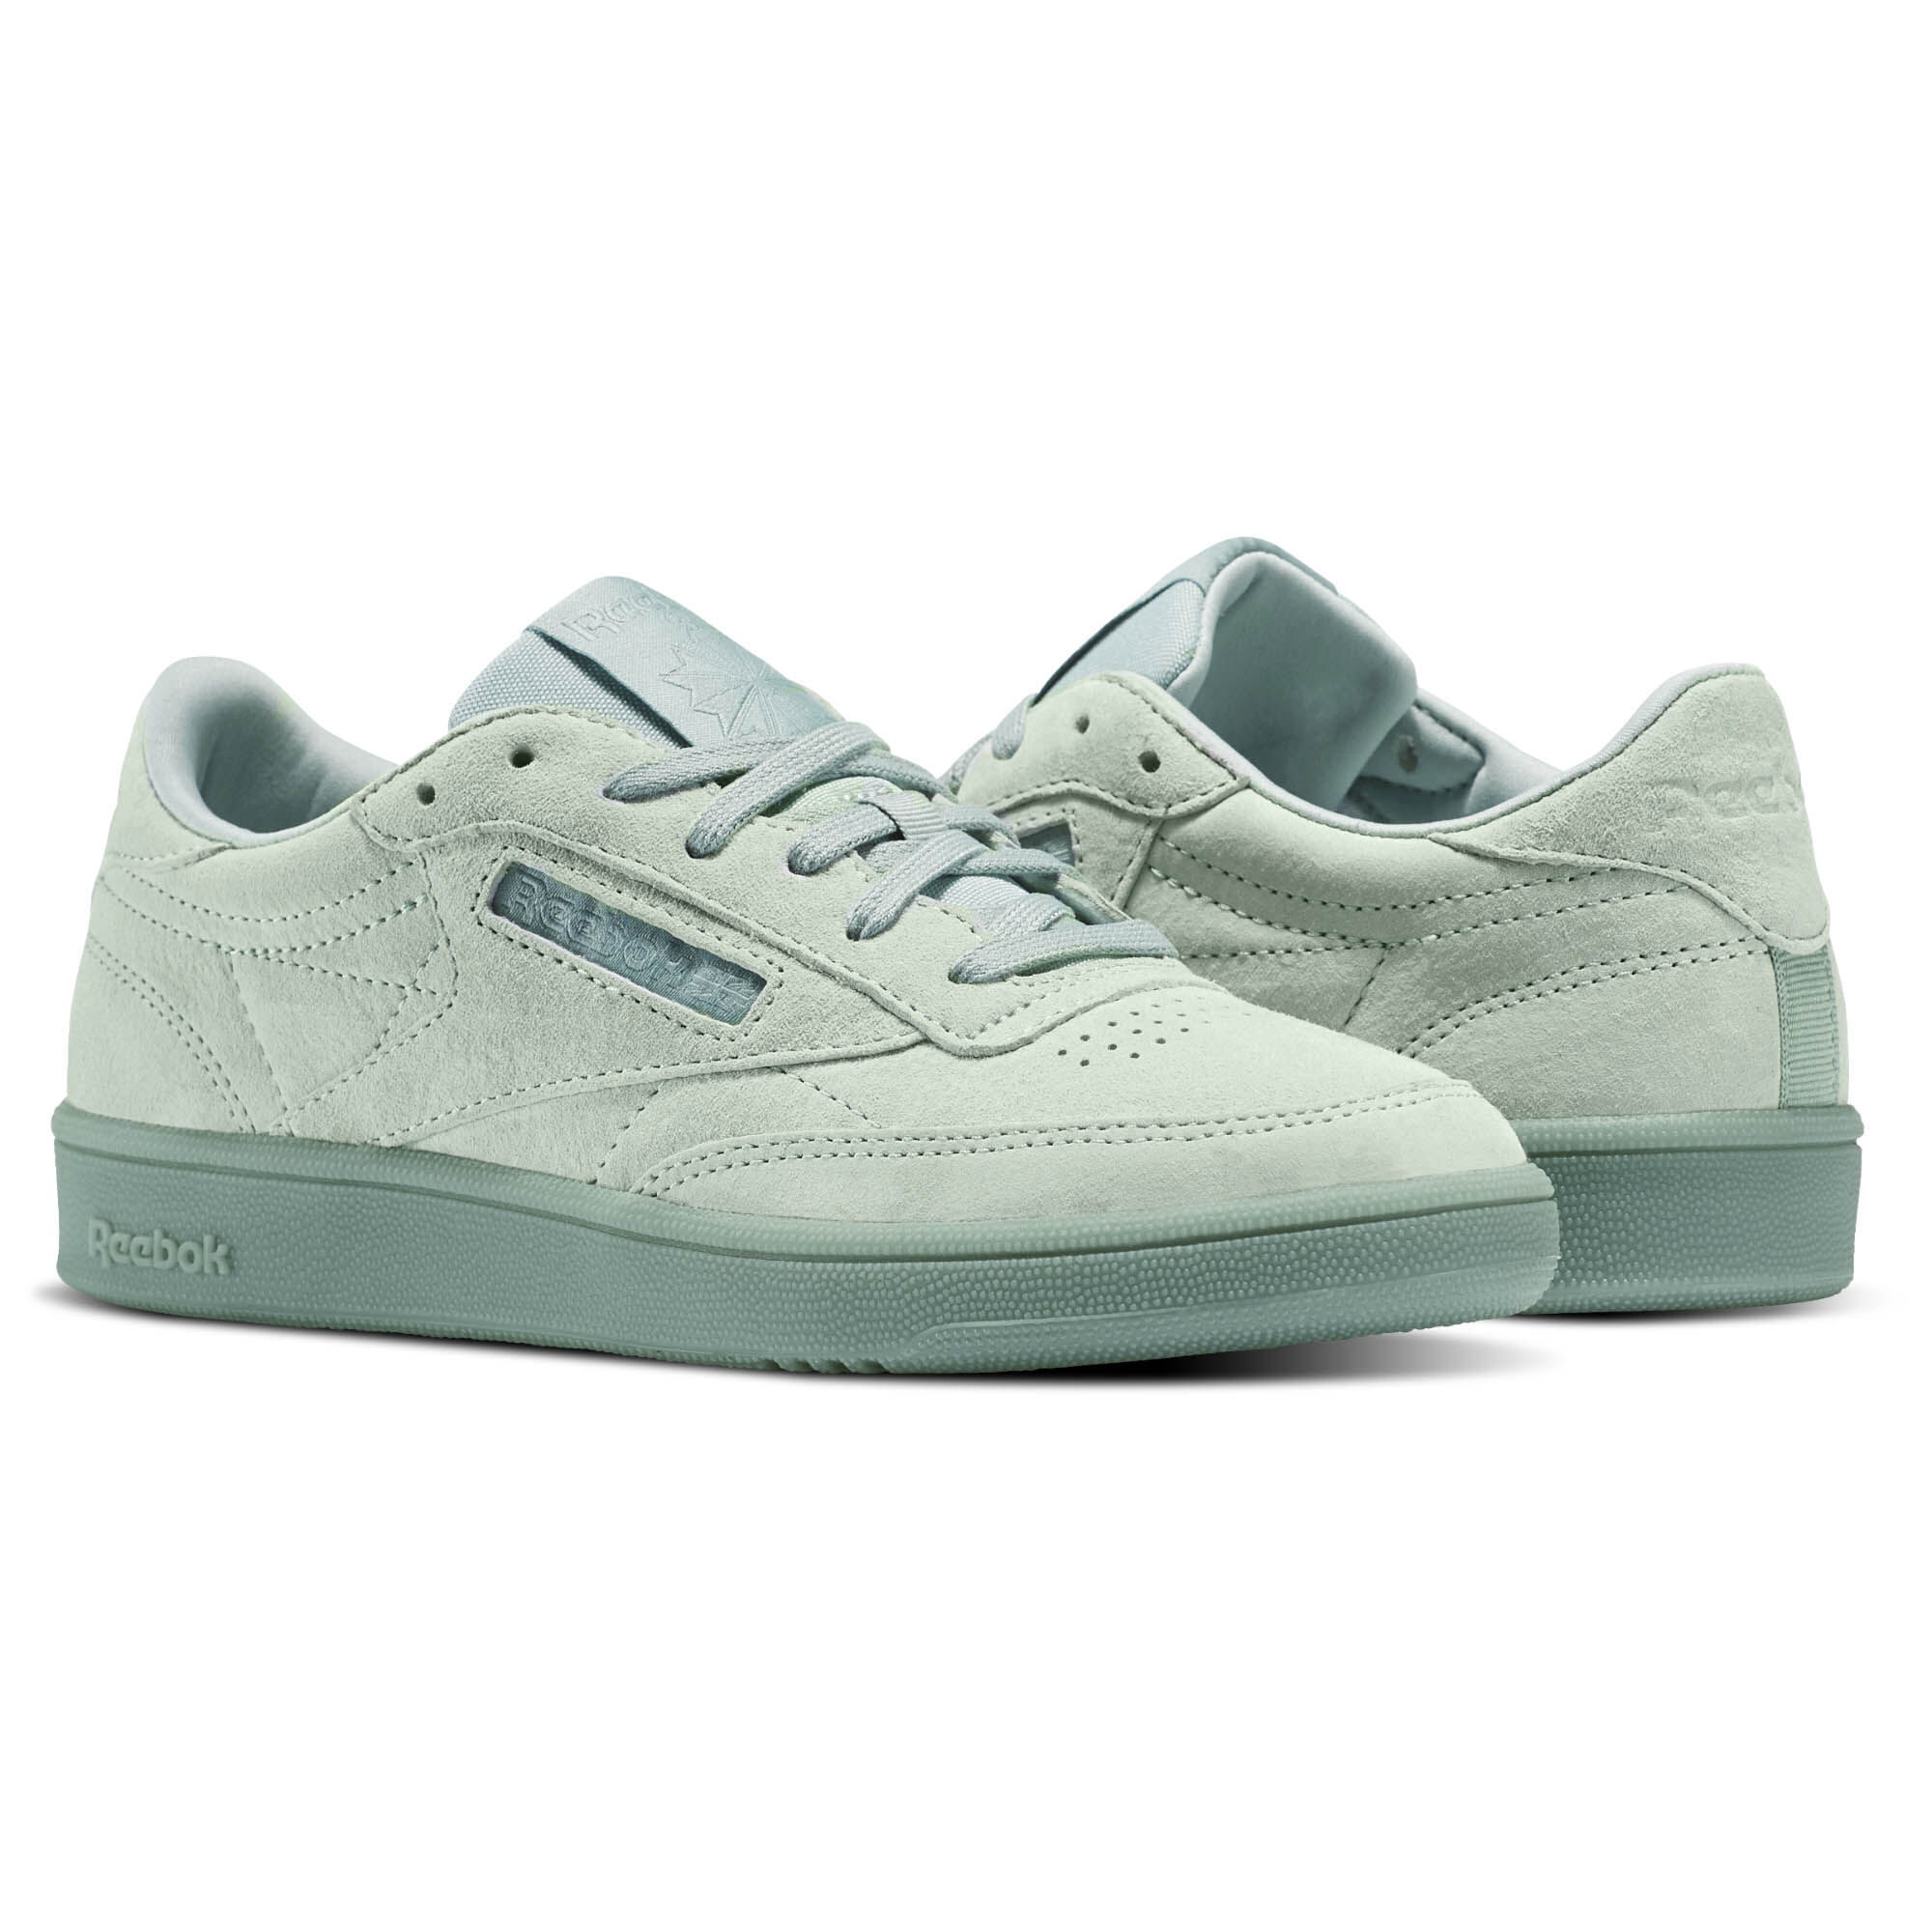 Reebok Classic CLUB C 85 LACE - Trainers - seaside grey/white